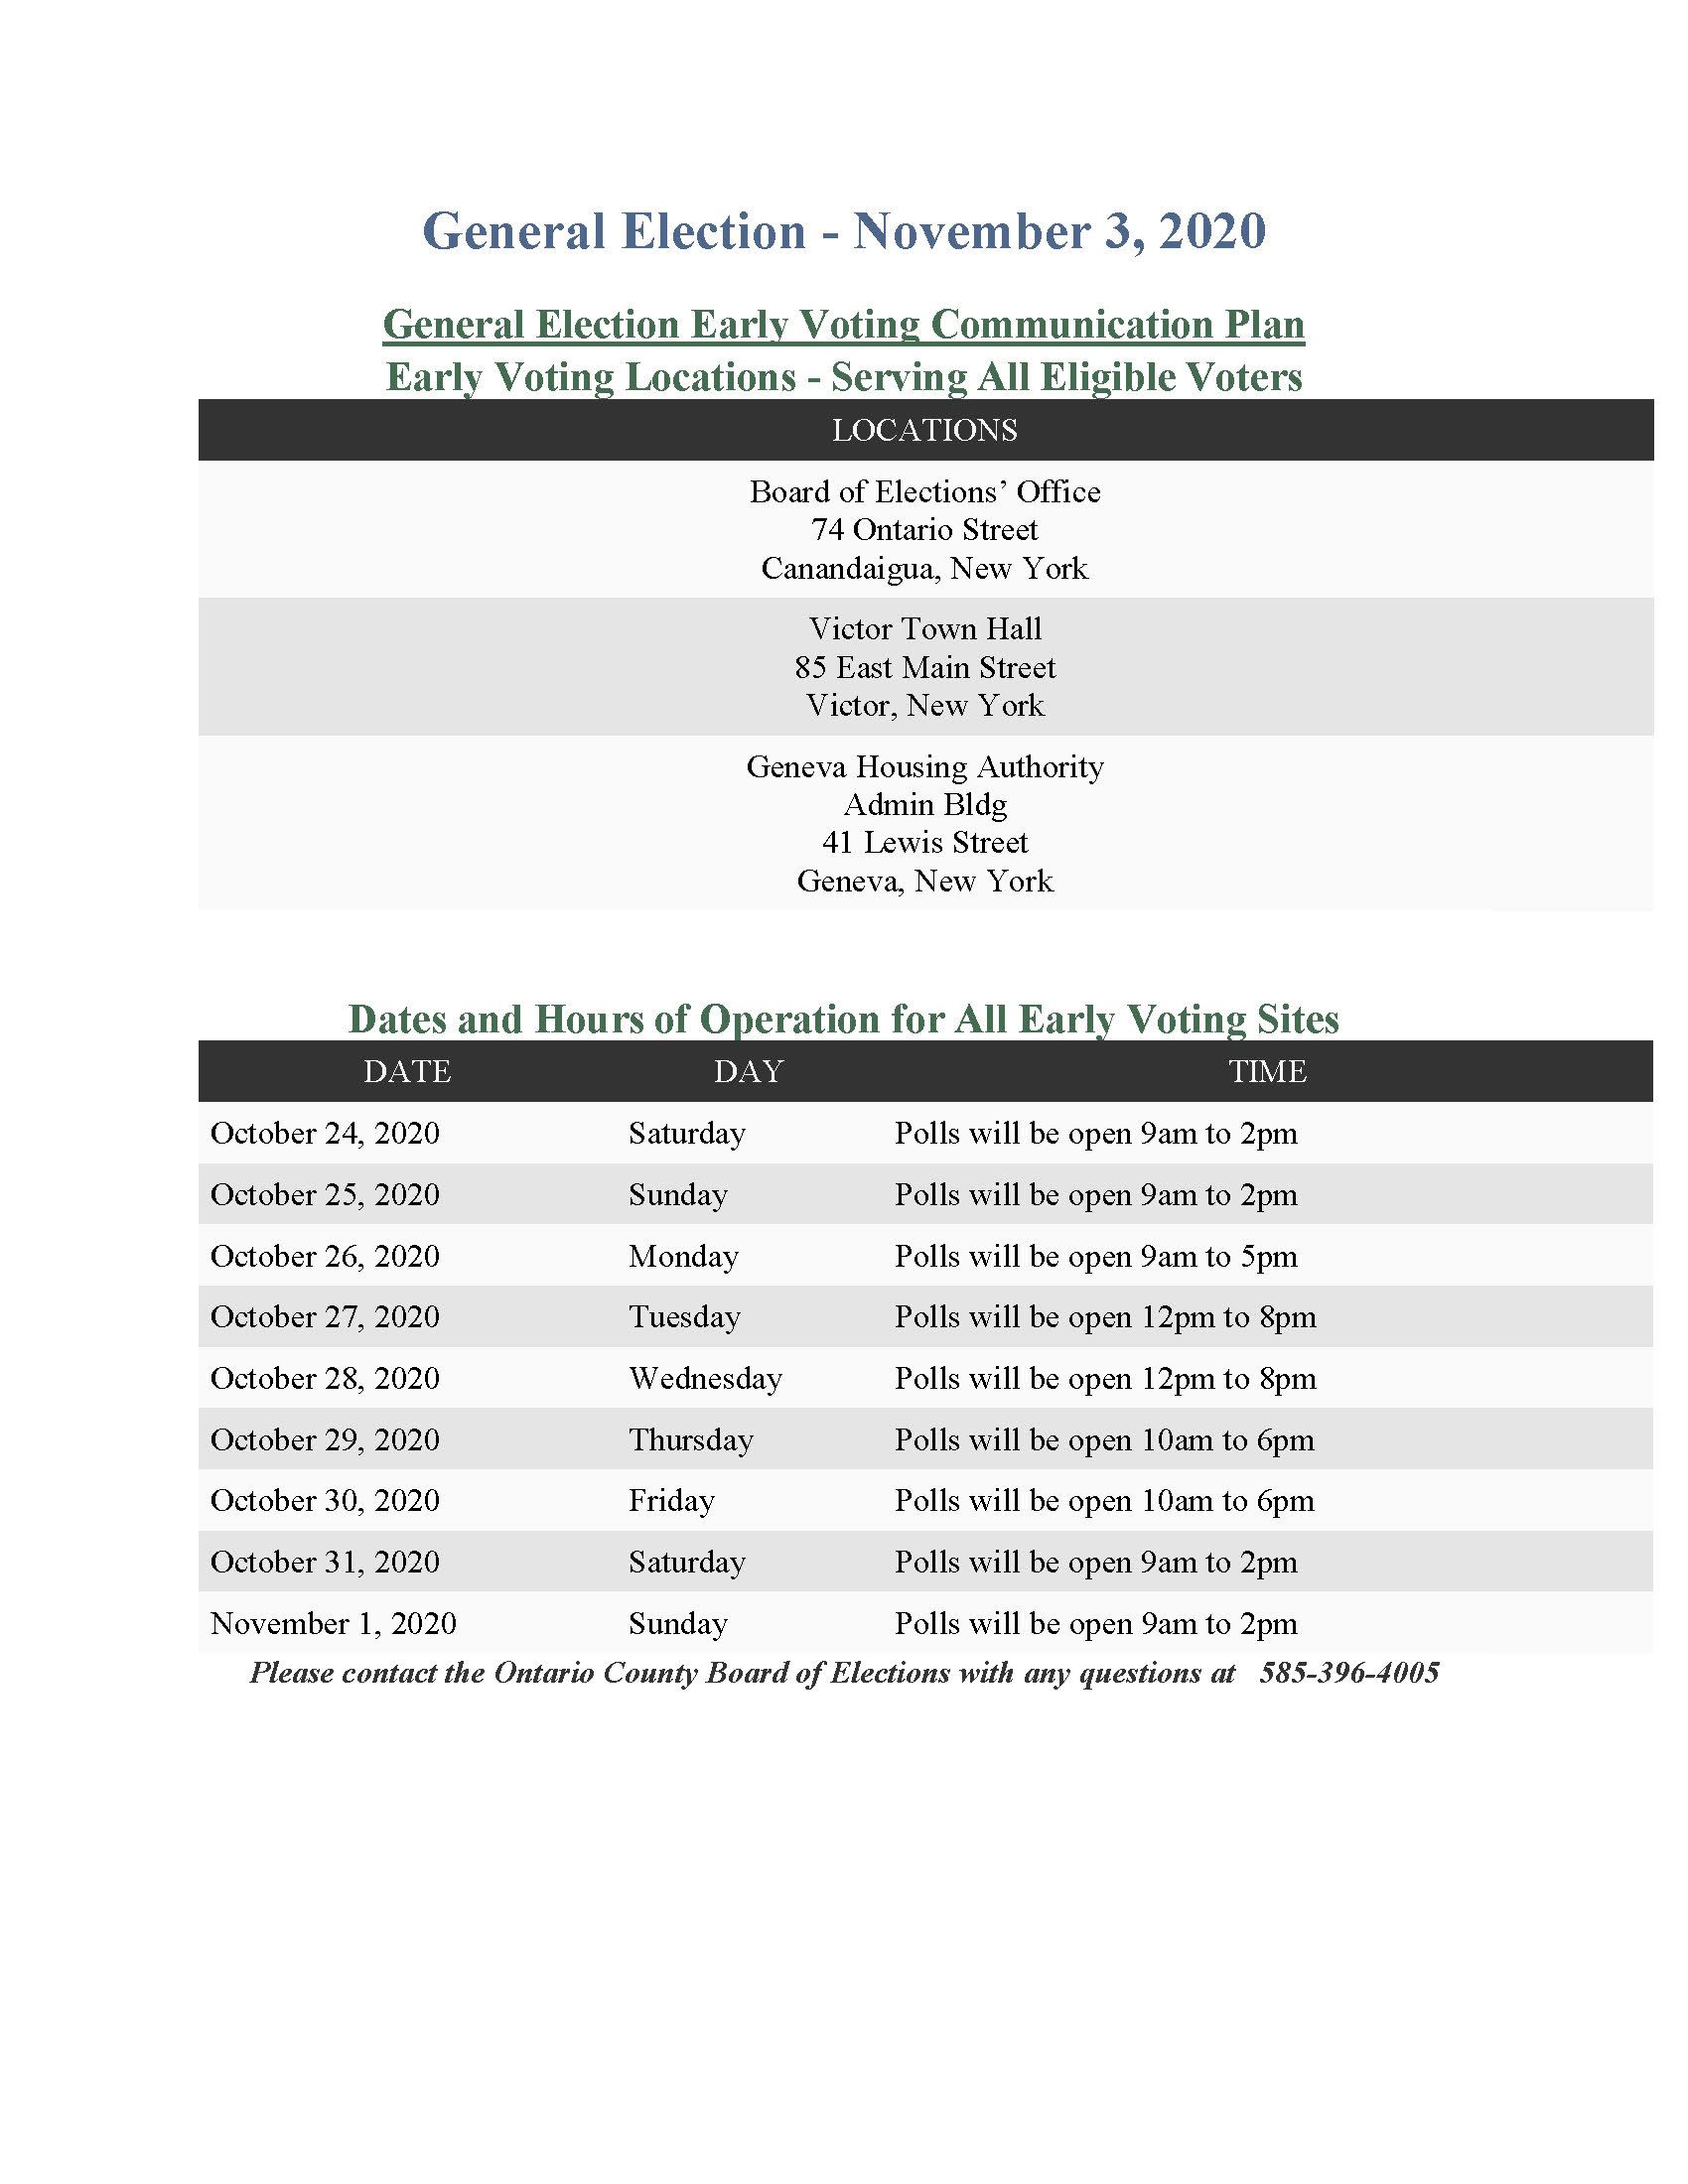 General Election Early Voting Schedule